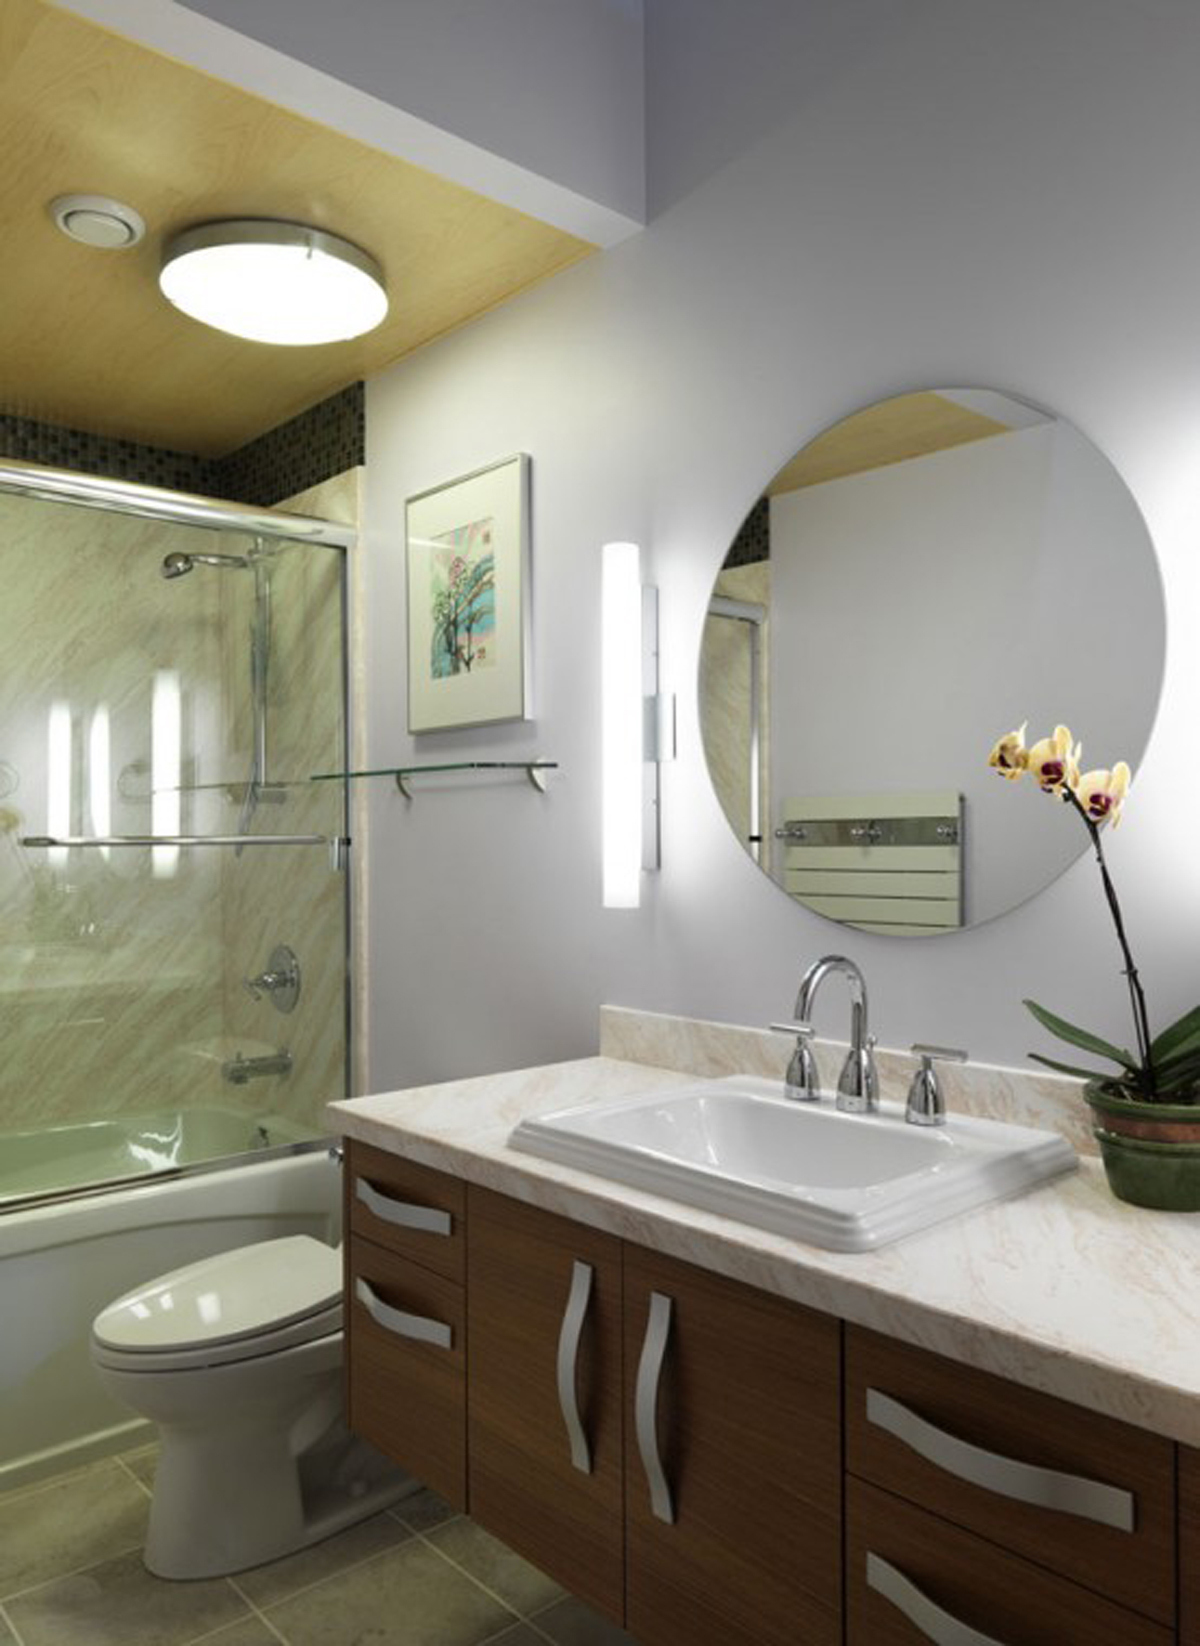 Eco-Fabulous Home Design by Architecton and Shelter Industries - Bathroom